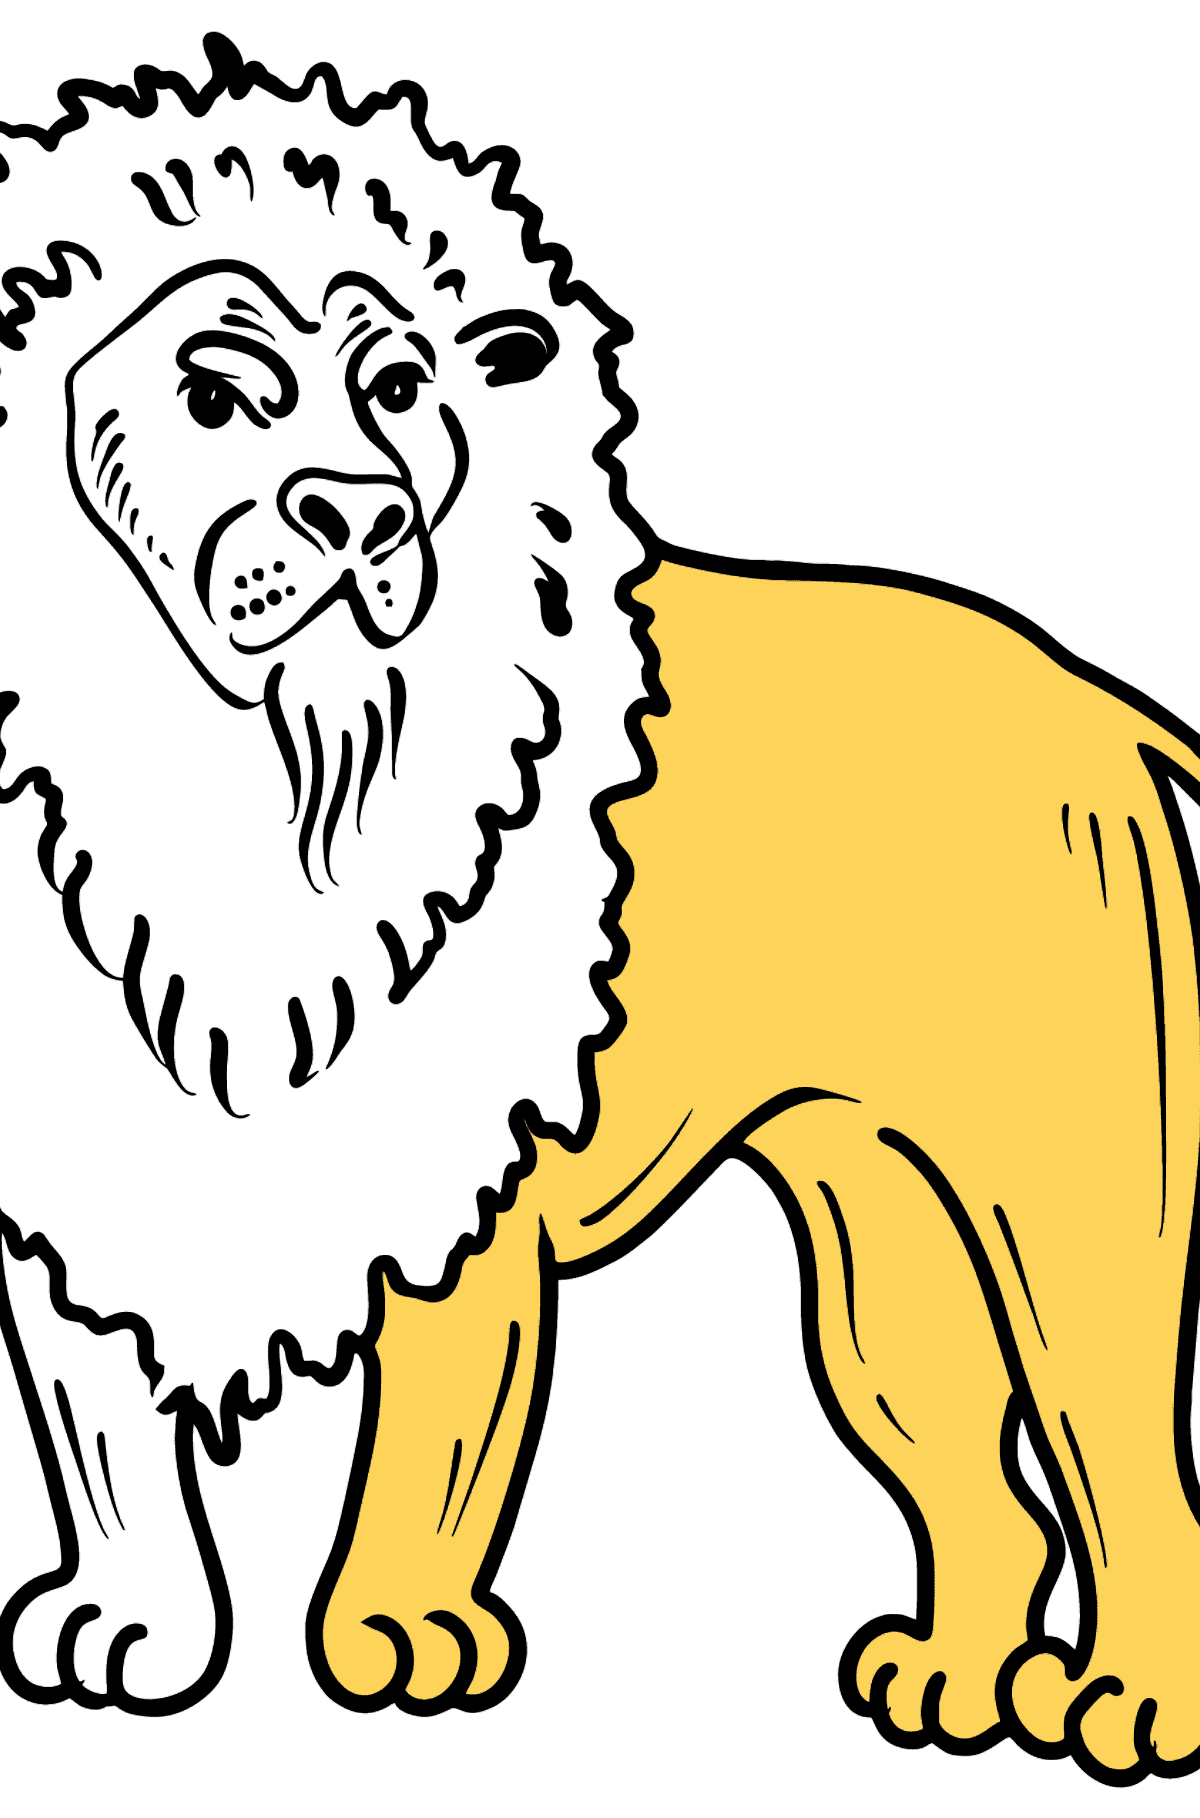 Lion coloring page - Coloring Pages for Kids